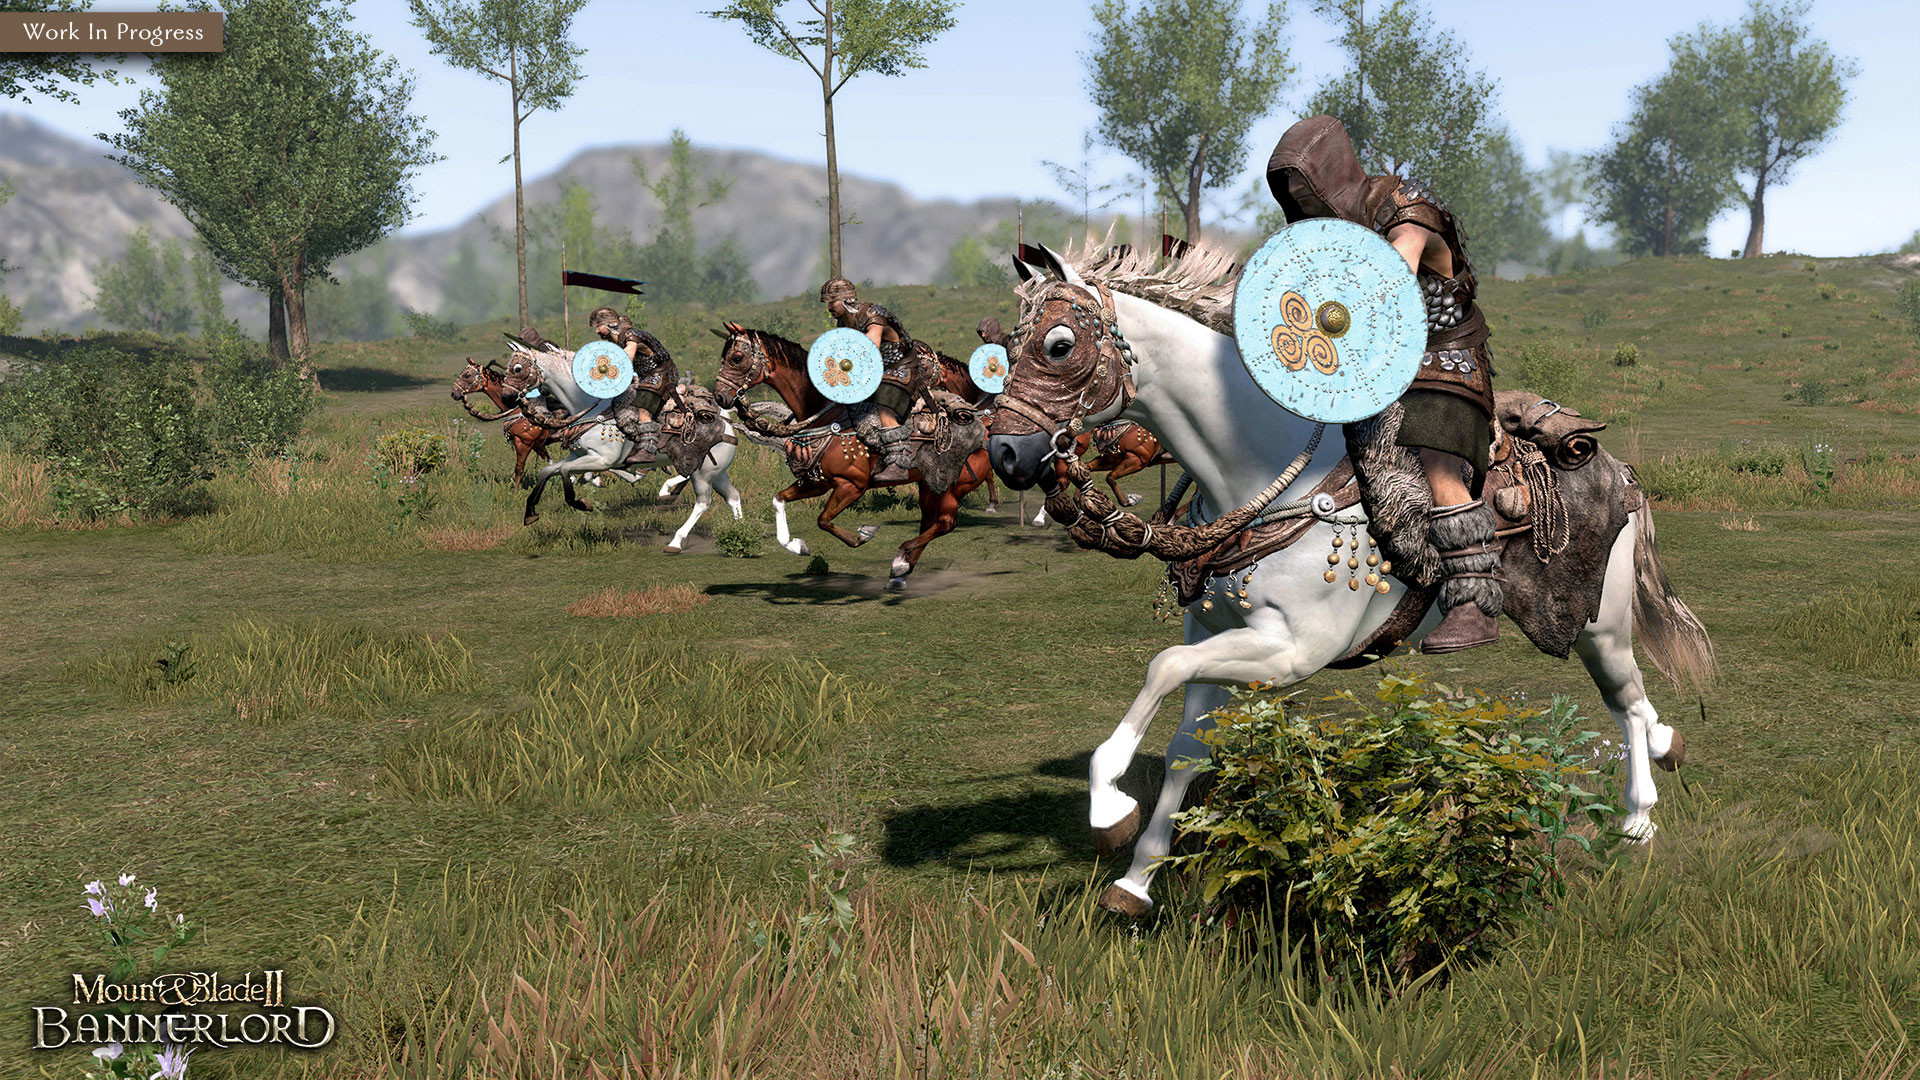 Screenshot for the game Mount & Blade II: Bannerlord [1.5.5|IN DEV]  (2020) download torrent RePack